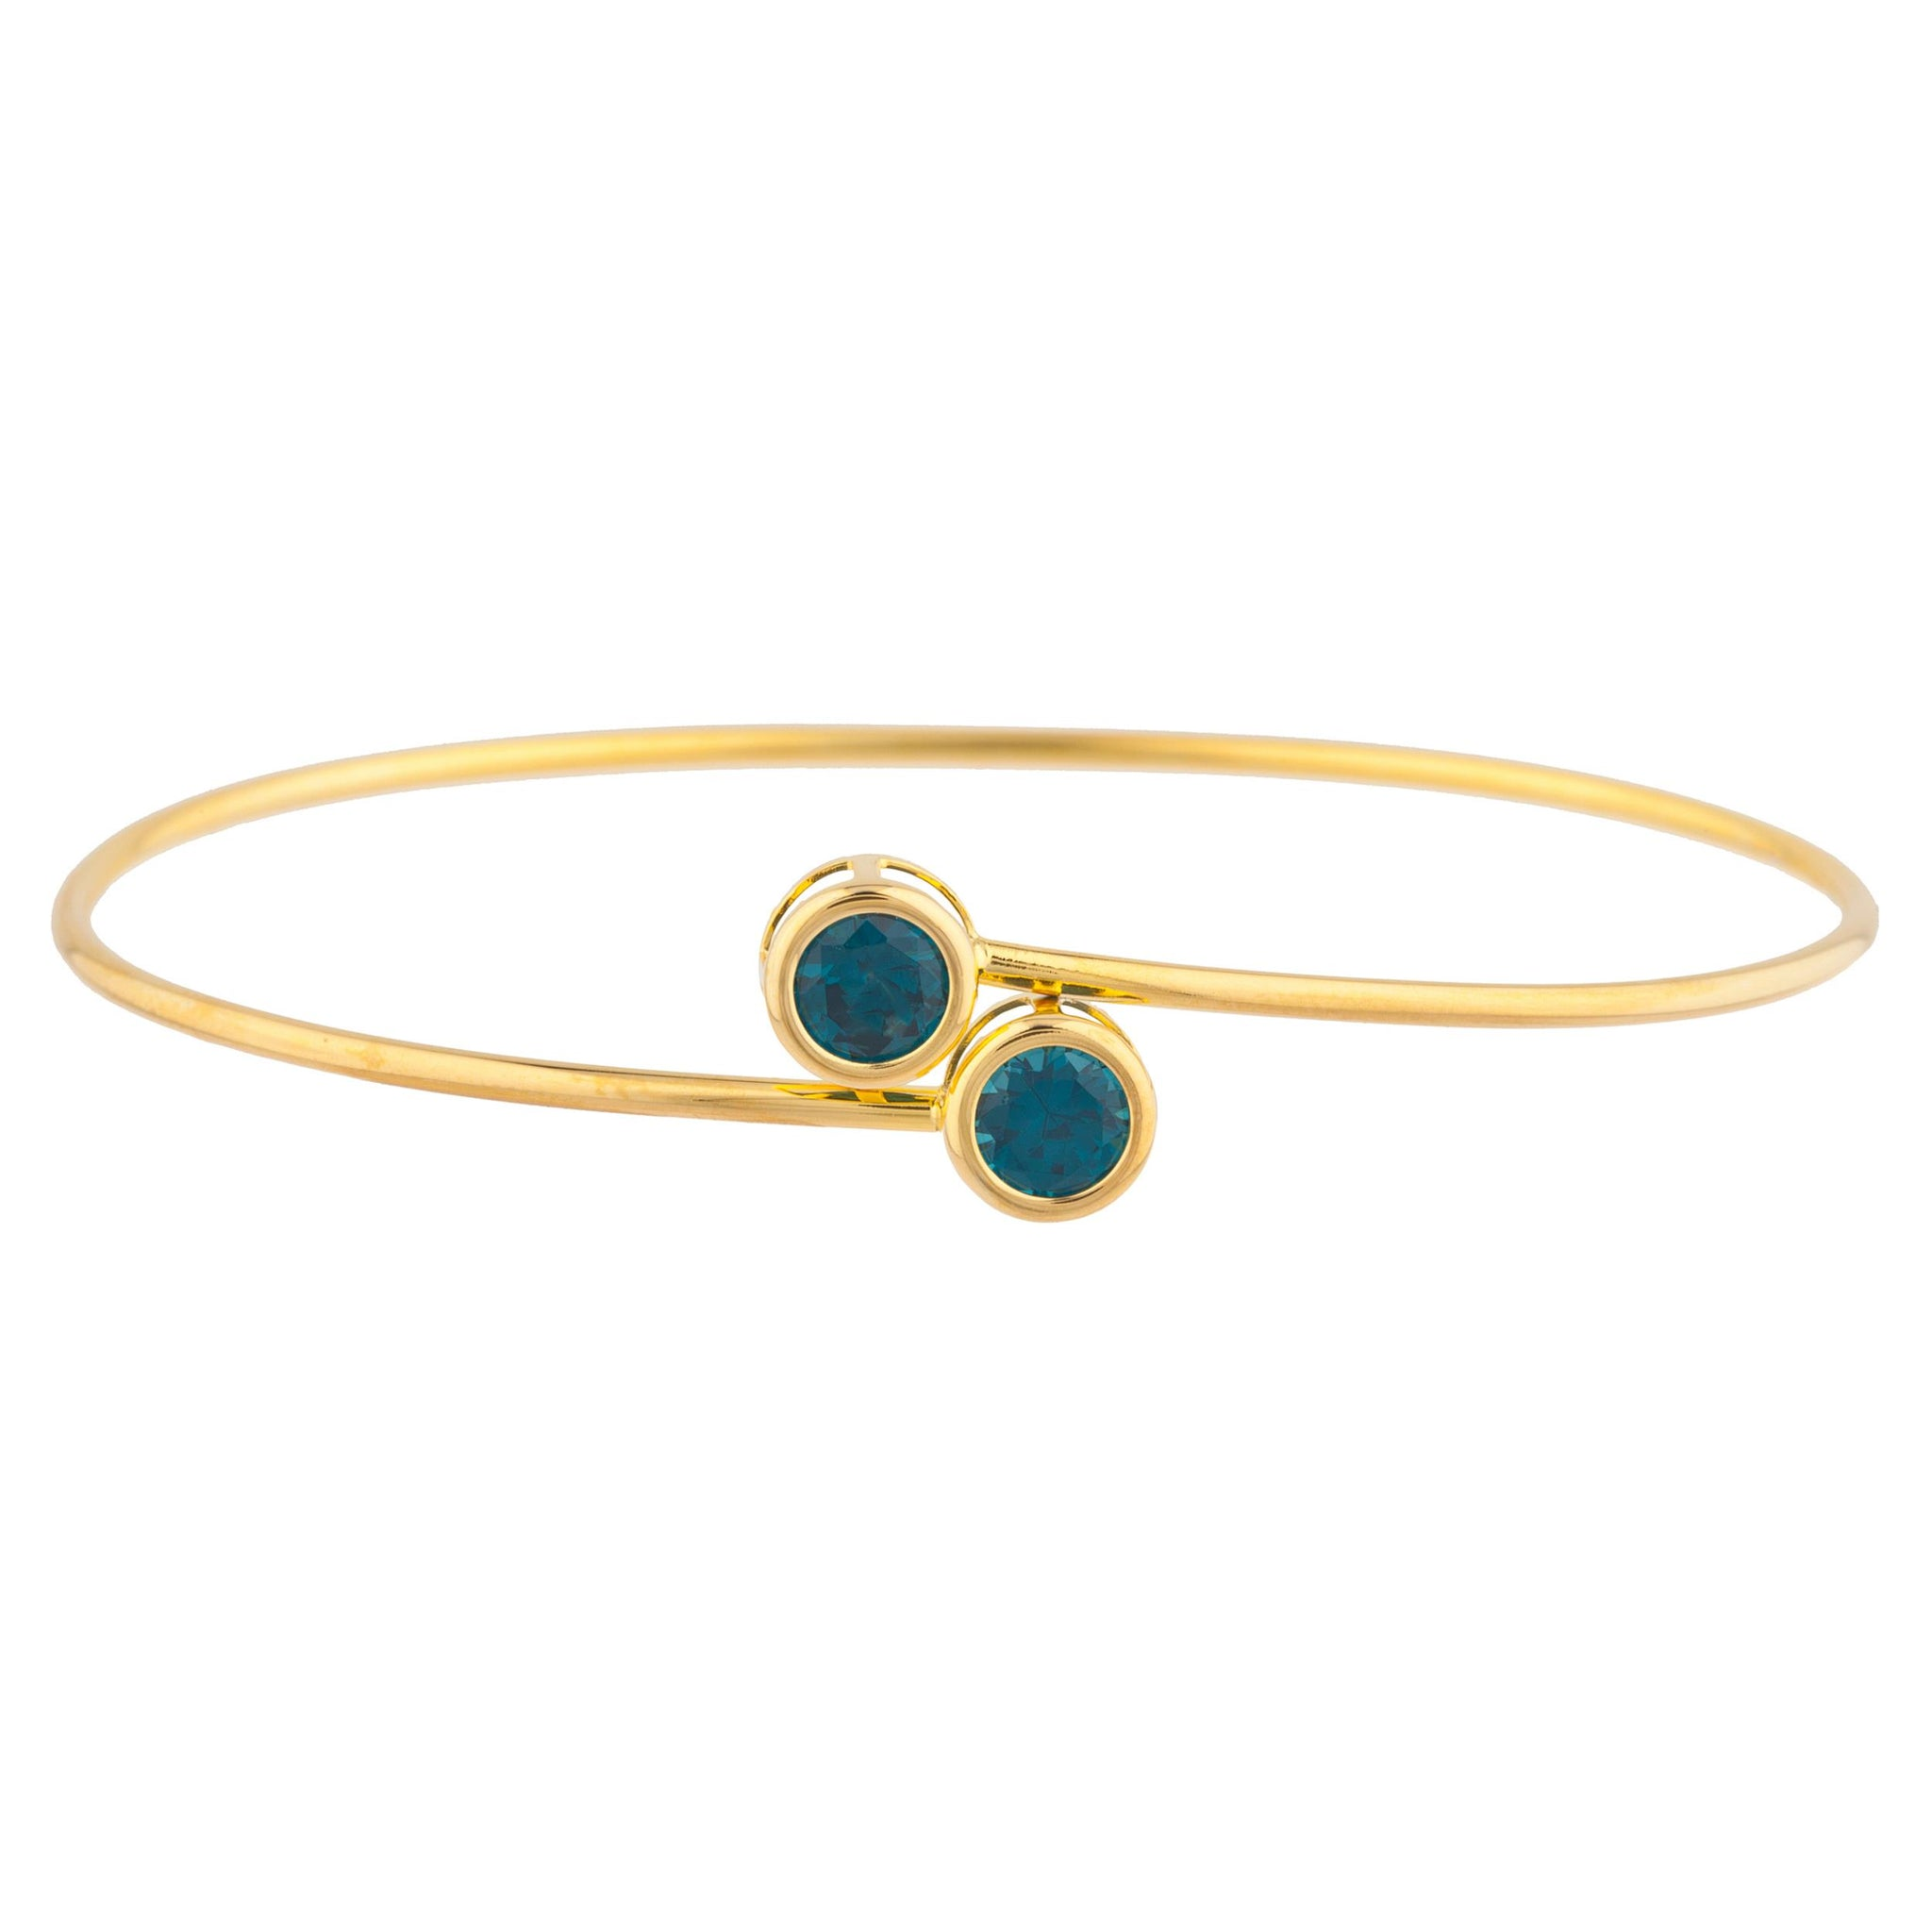 14Kt Yellow Gold Plated London Blue Topaz Round Bezel Bangle Bracelet